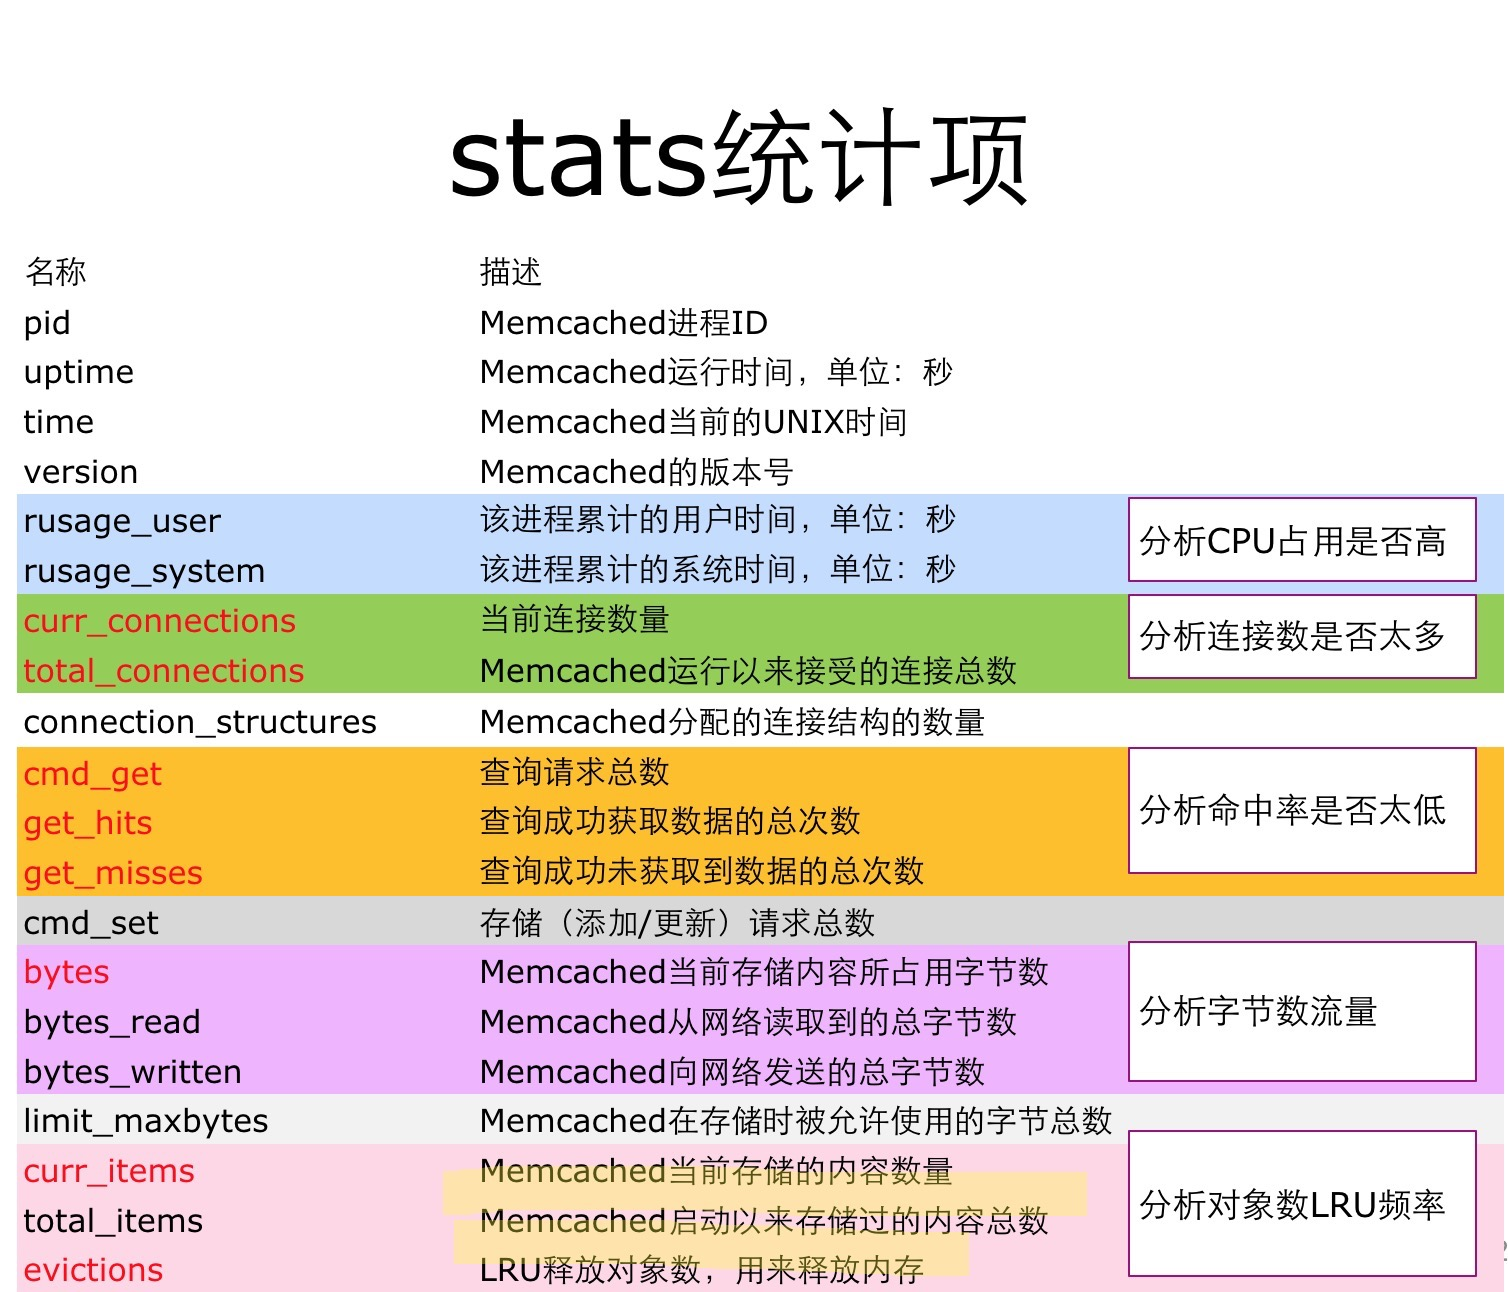 memcached stats命令